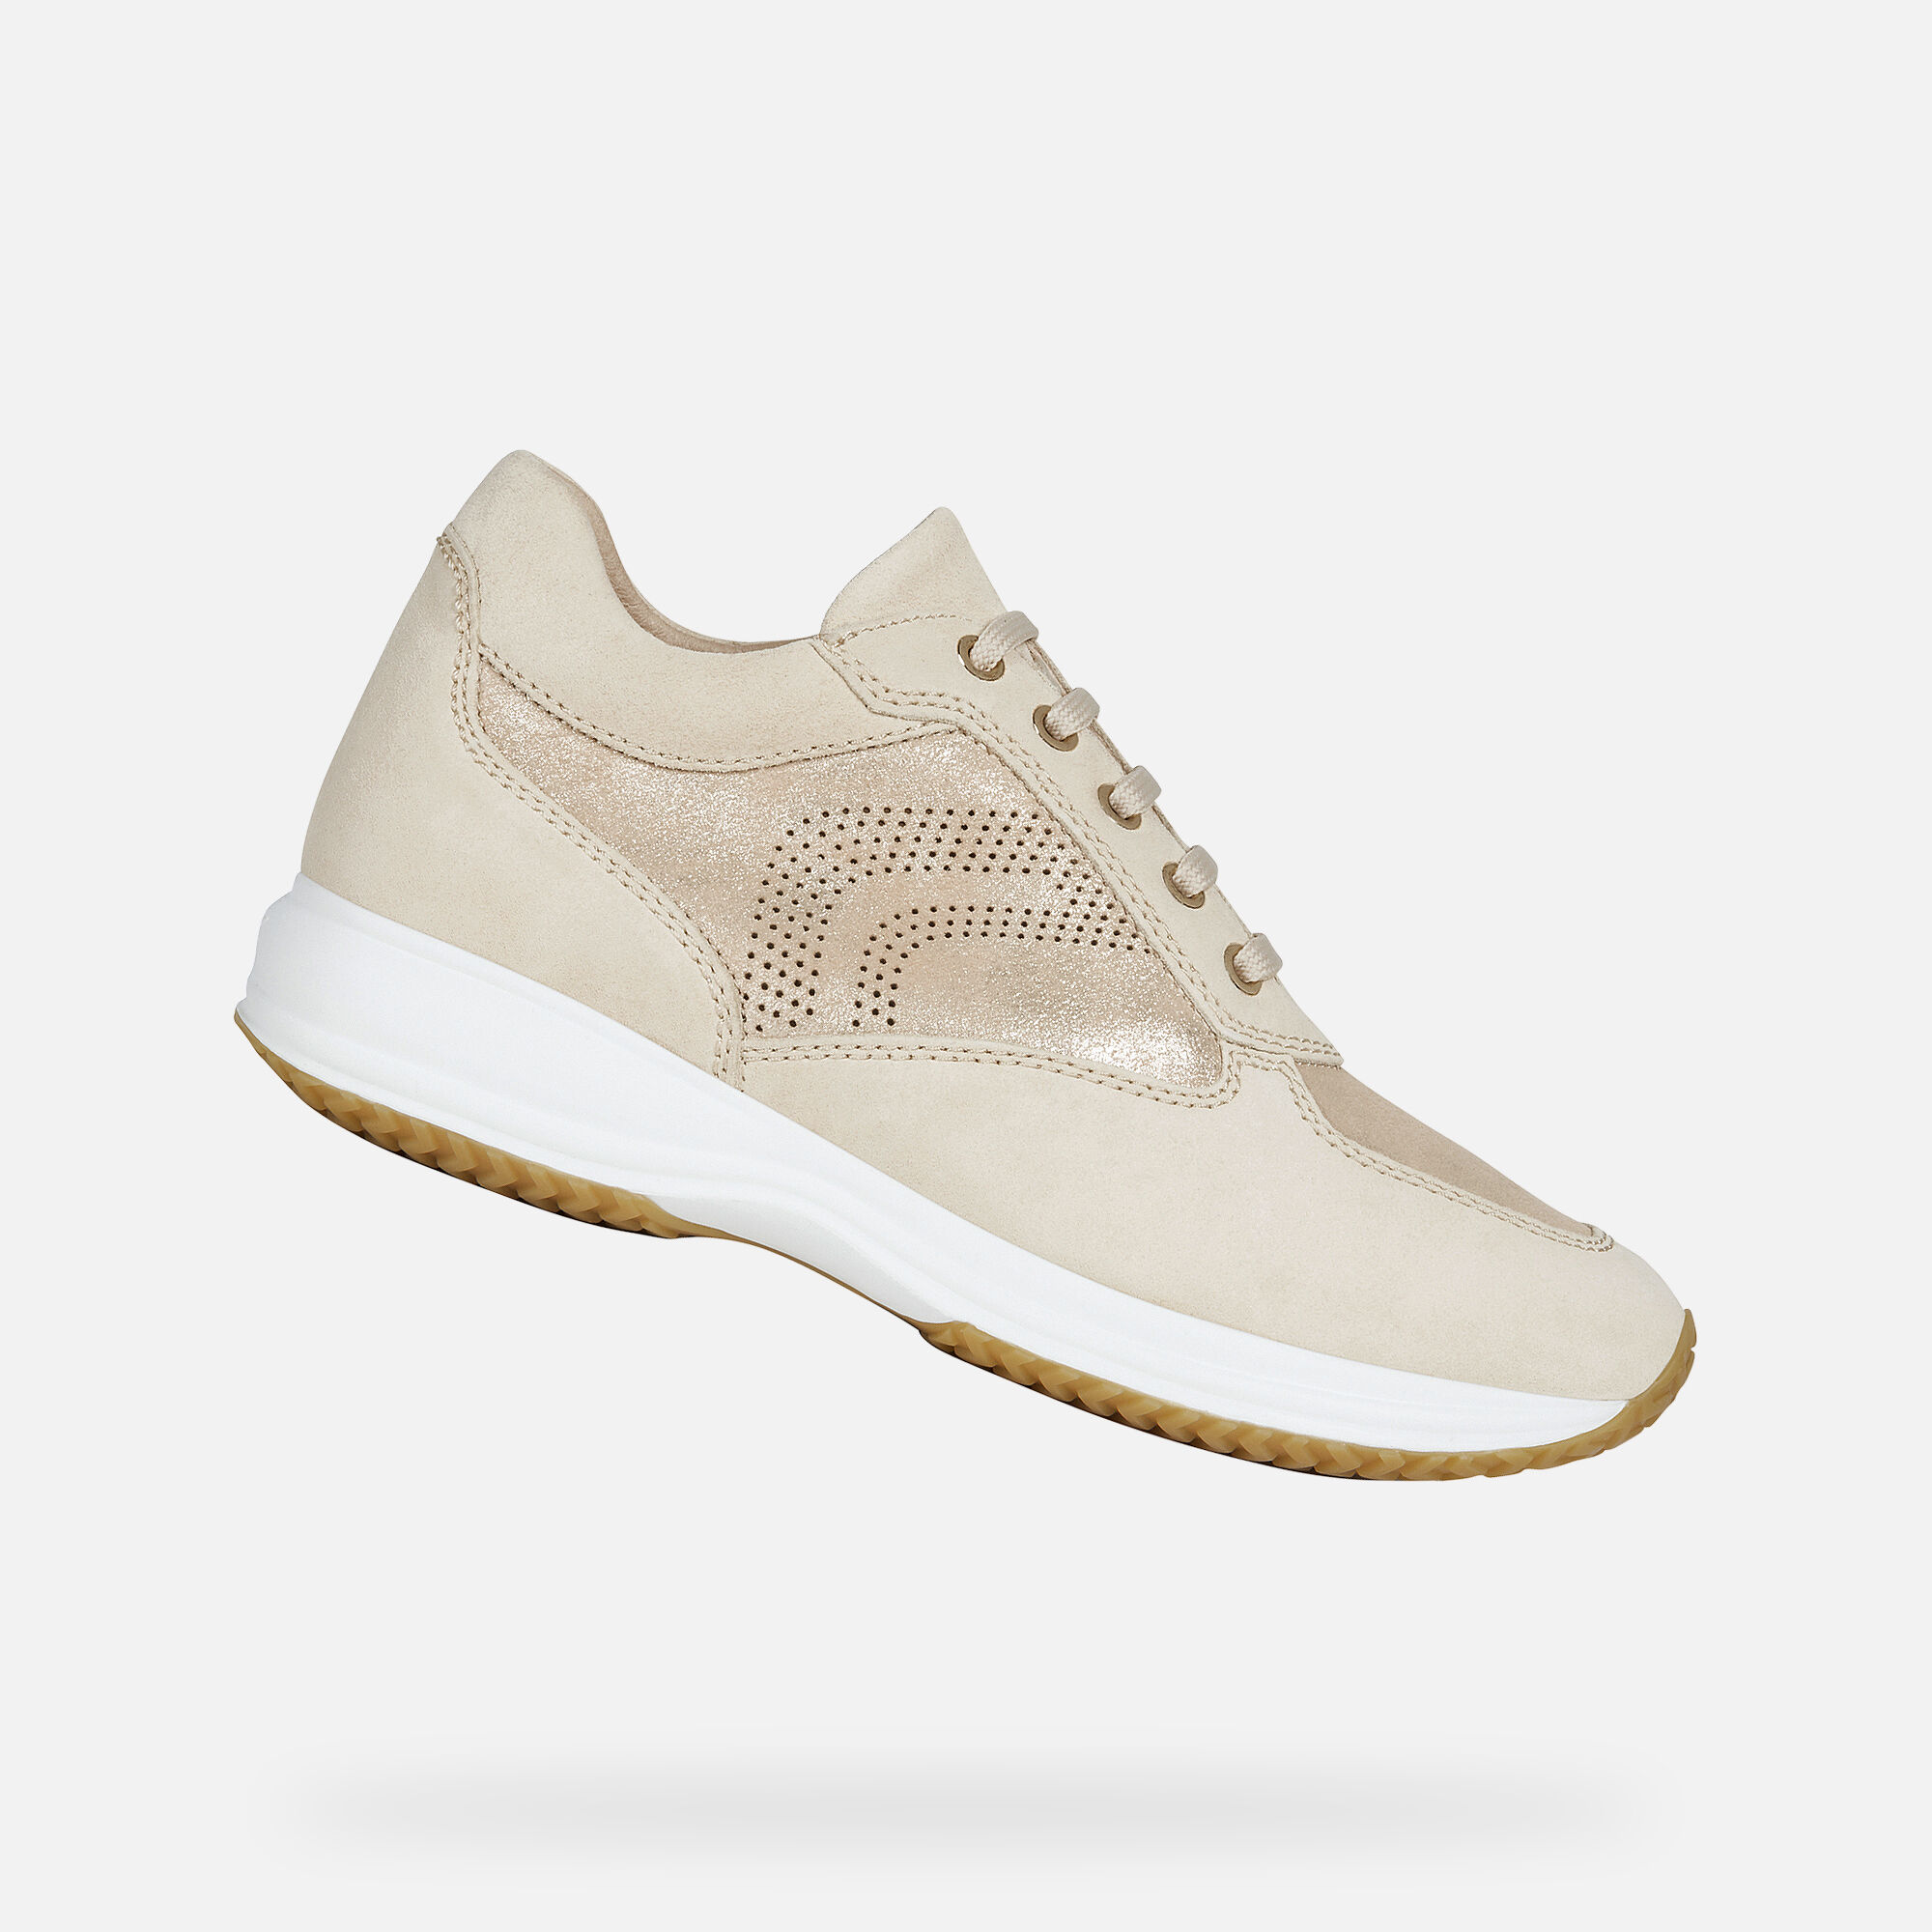 Geox DONNA HAPPY Woman: Sand Sneakers